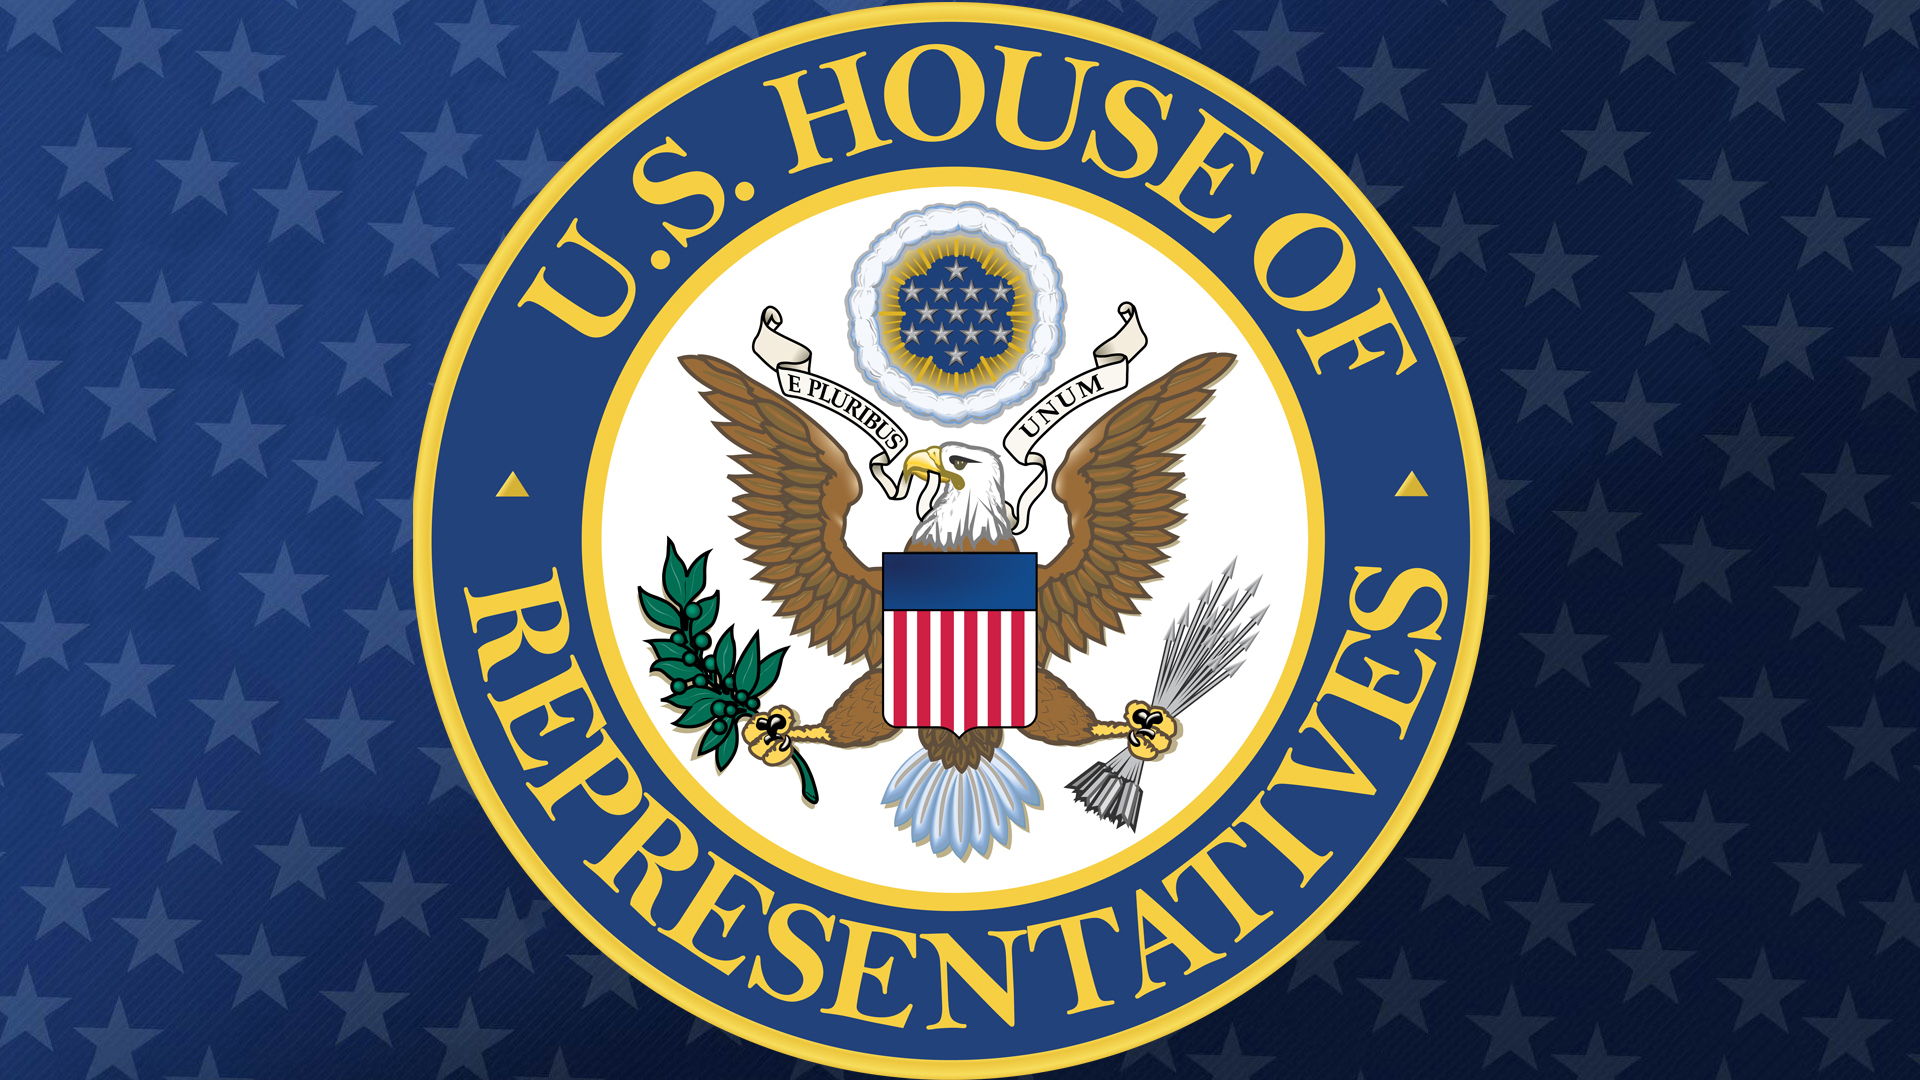 House of Representatives Seal white hero